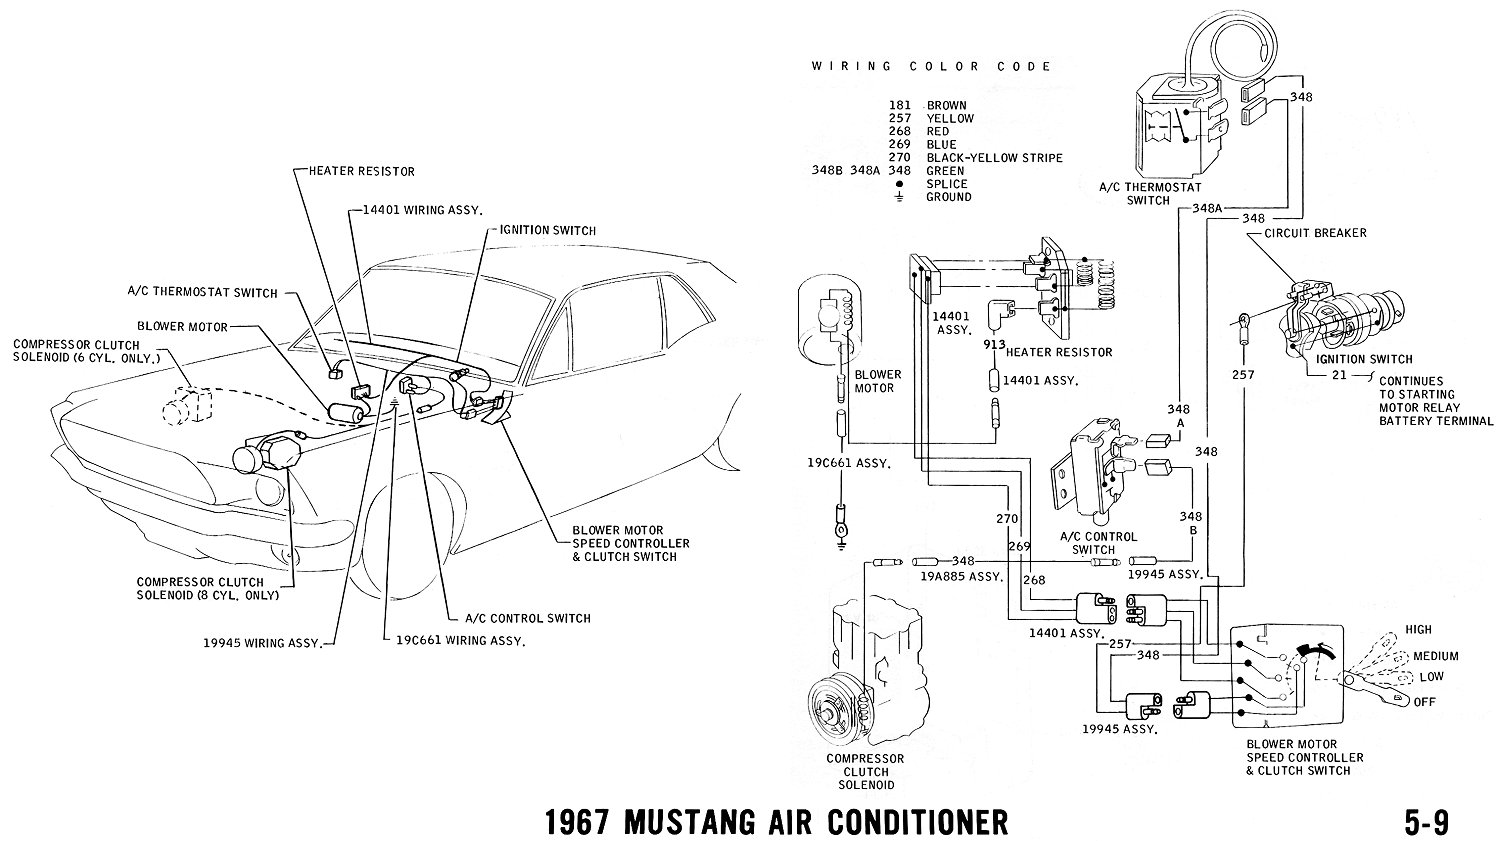 Mustang Wiring Schematic For Lights